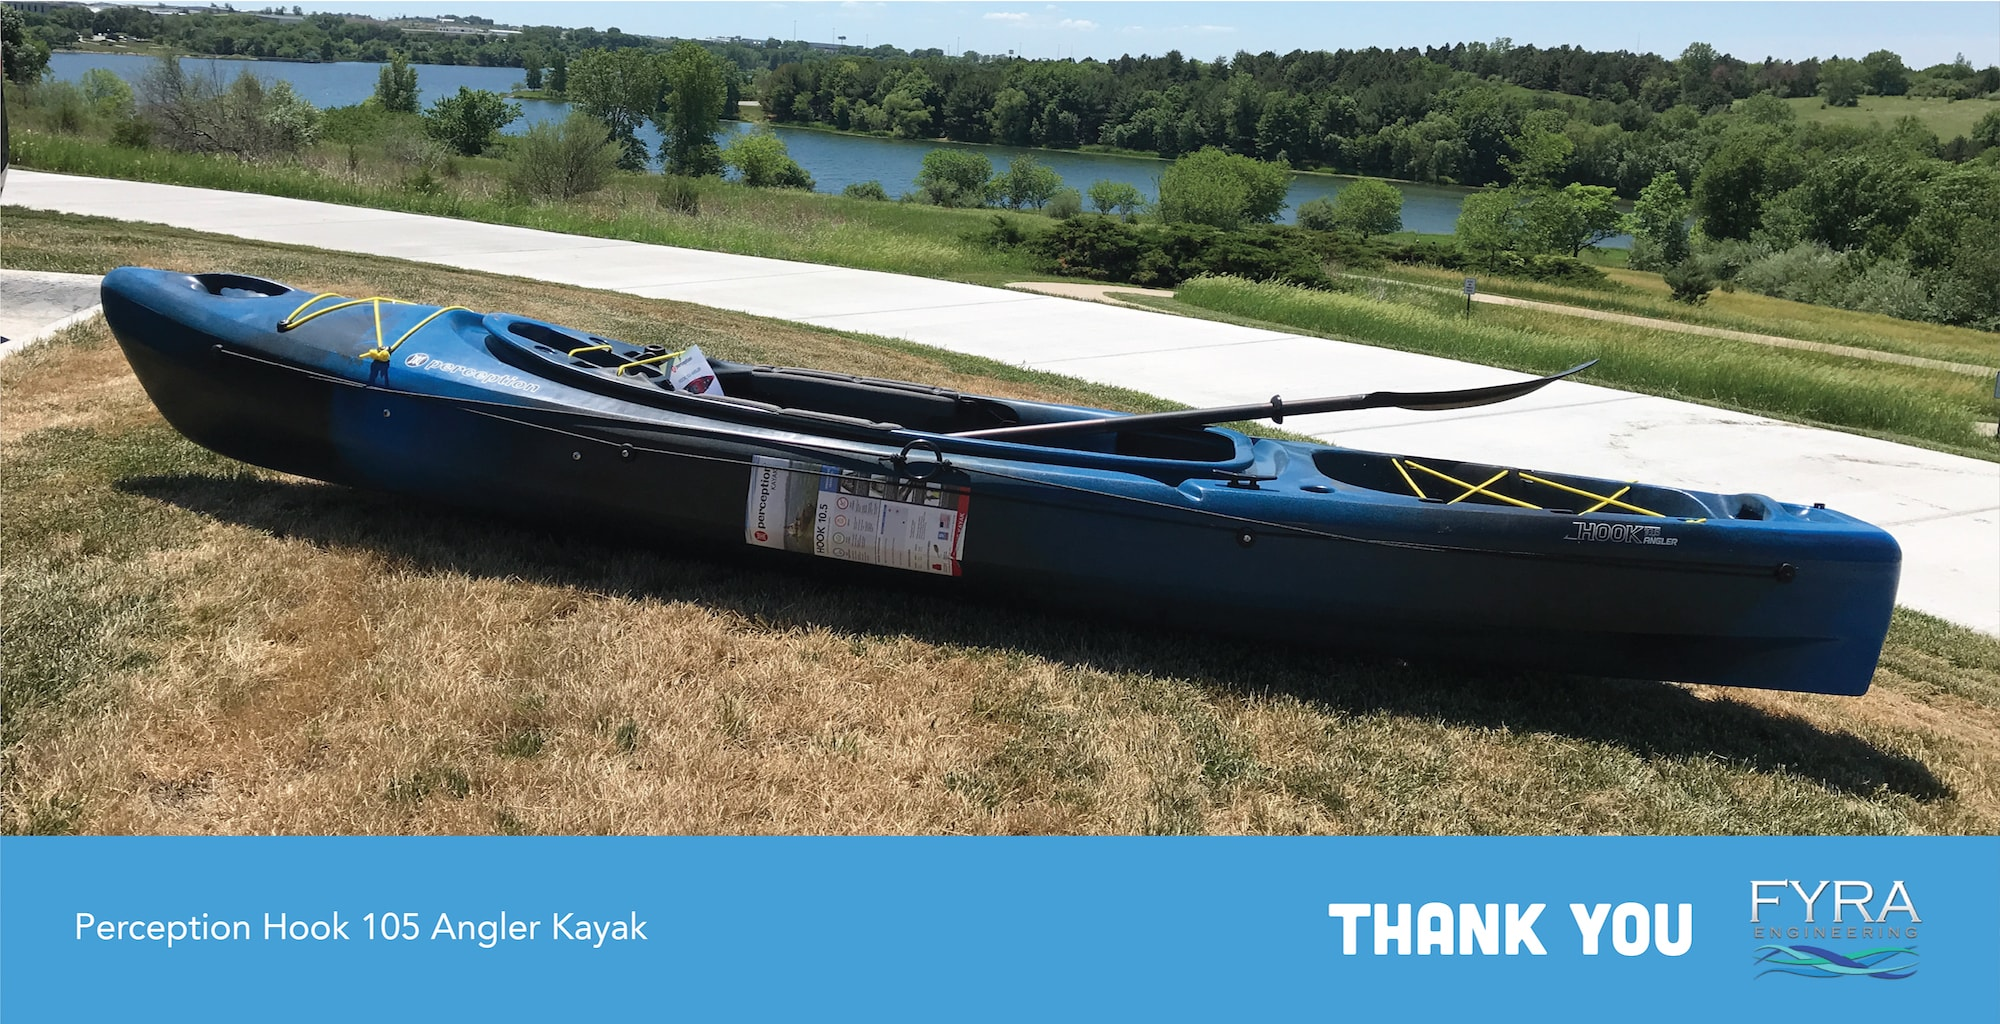 Kayak from FYRA